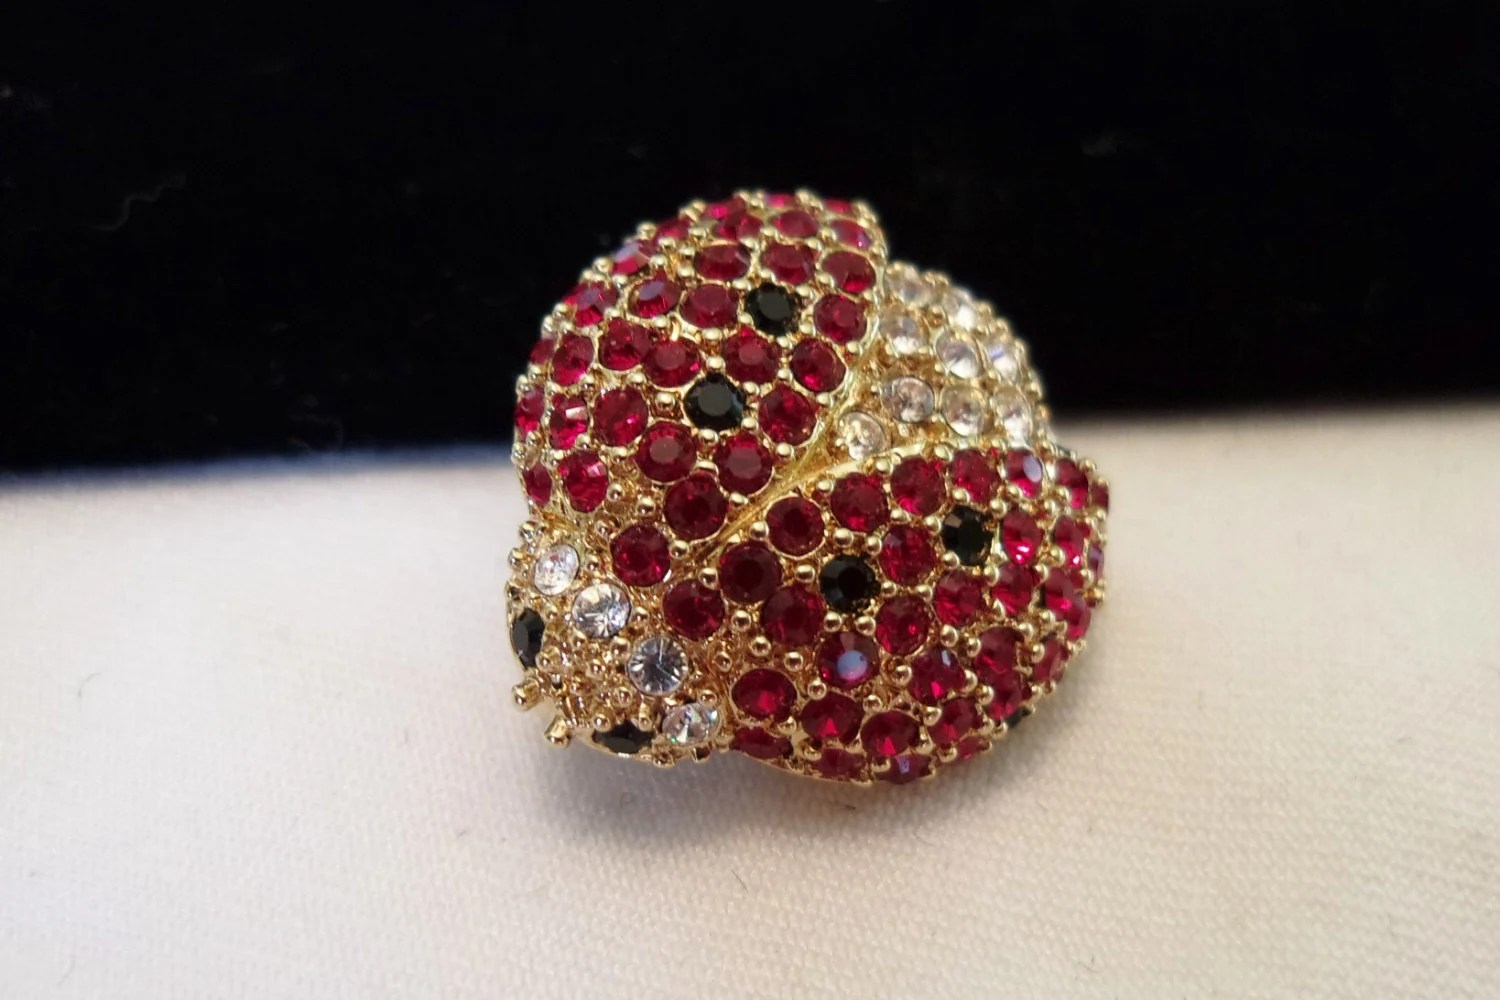 Pin by The Glitter Bug on ALEX BUY SELL TRADE ETSY BLUJAY